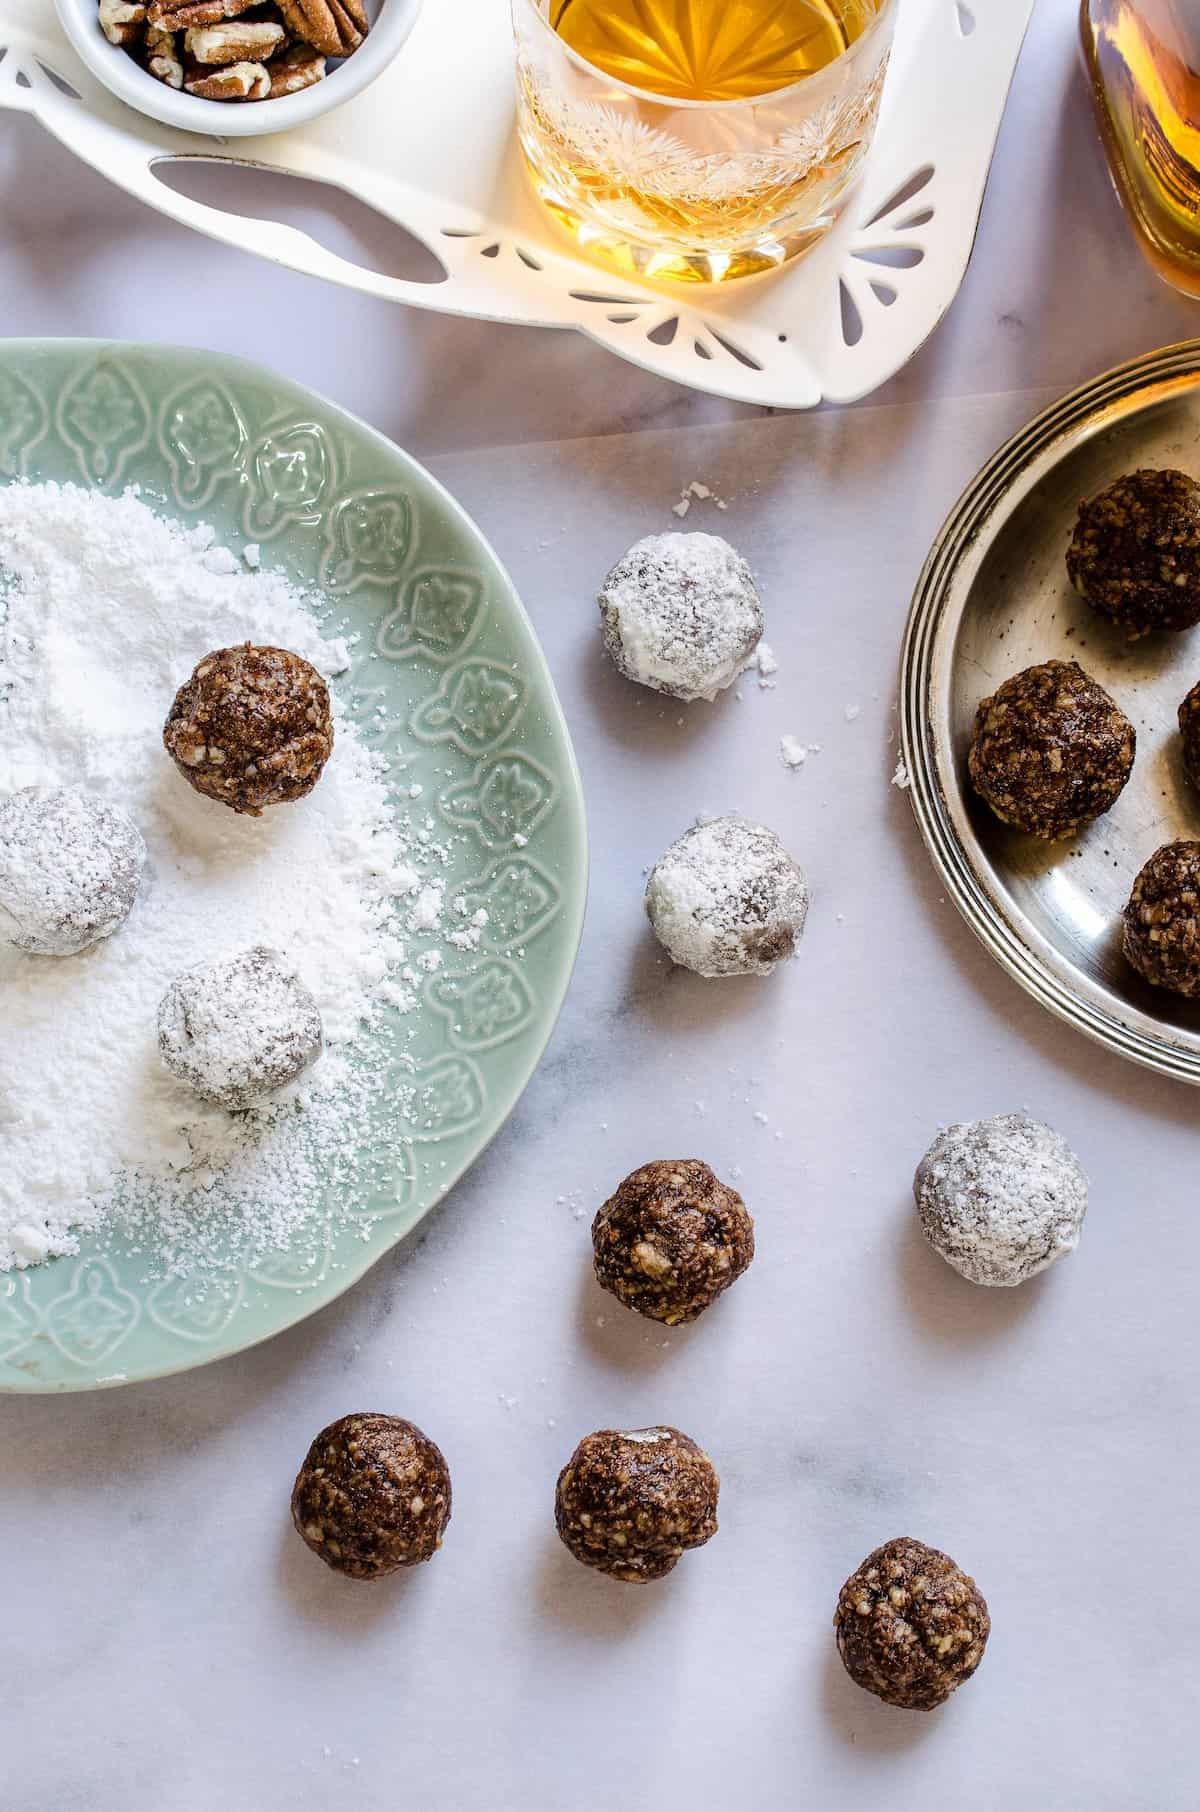 A green plate with powdered sugar next to bourbon balls and a glass of bourbon